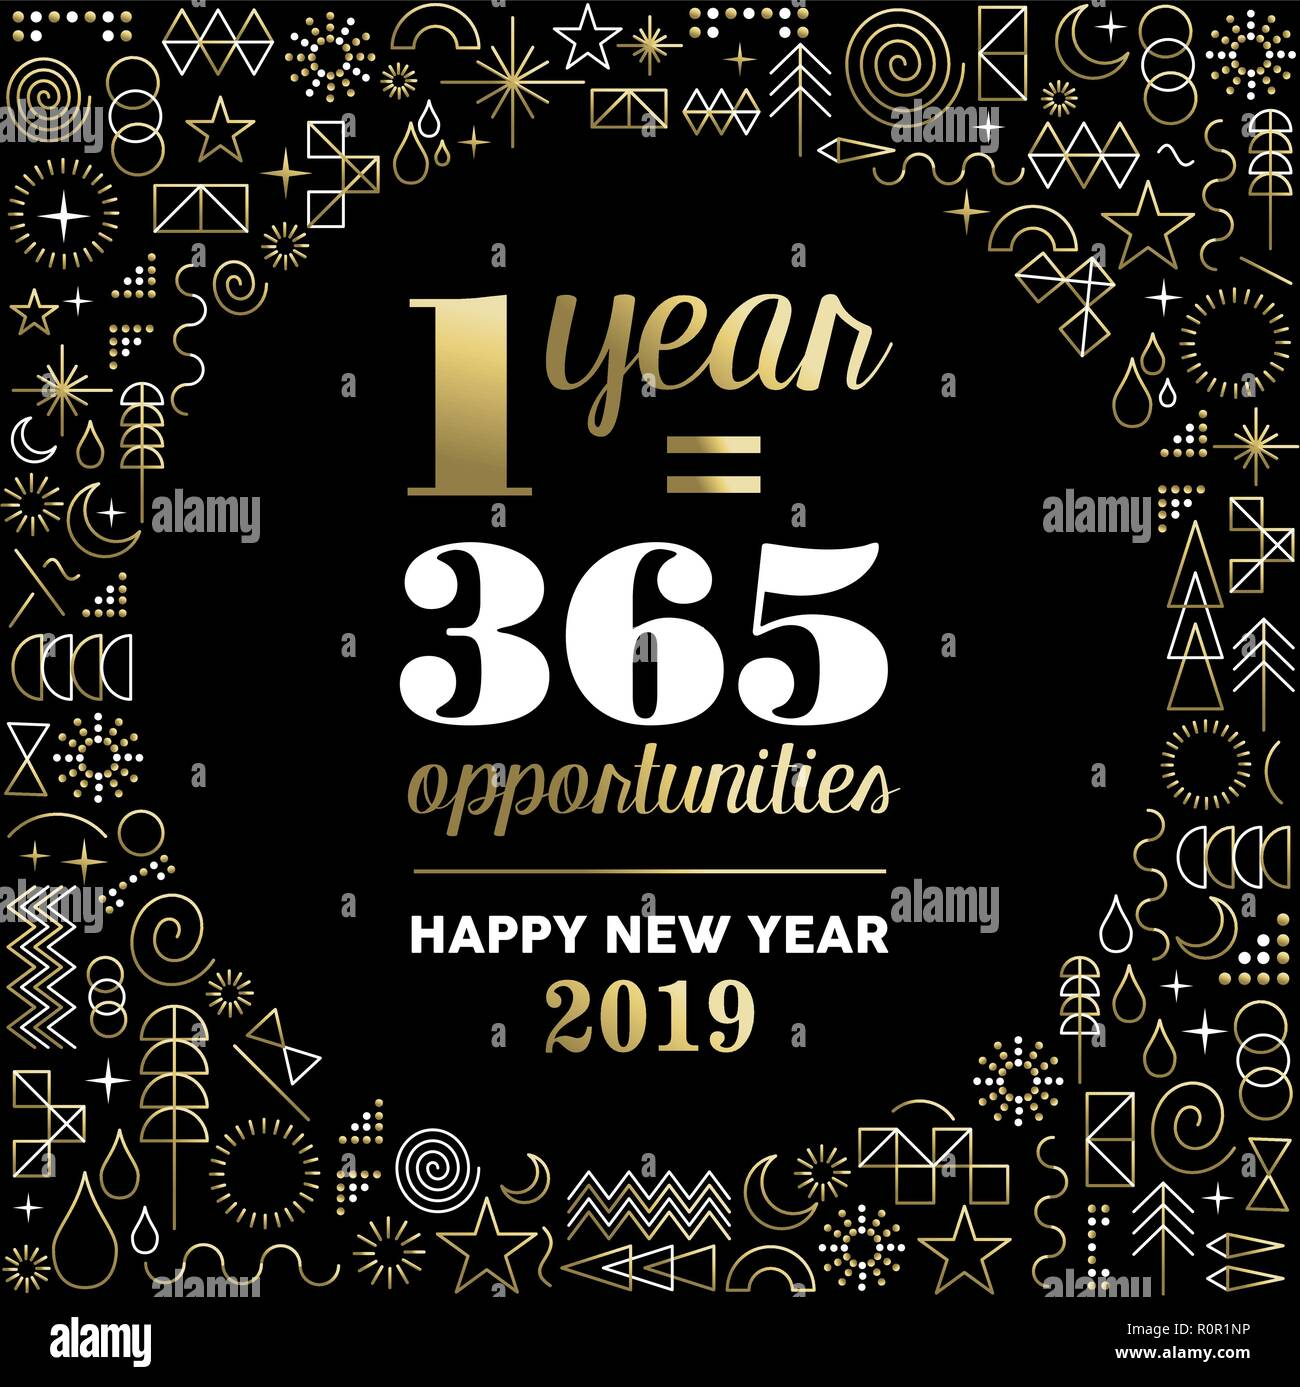 Happy new year 2019 inspiration quote poster with geometry ...